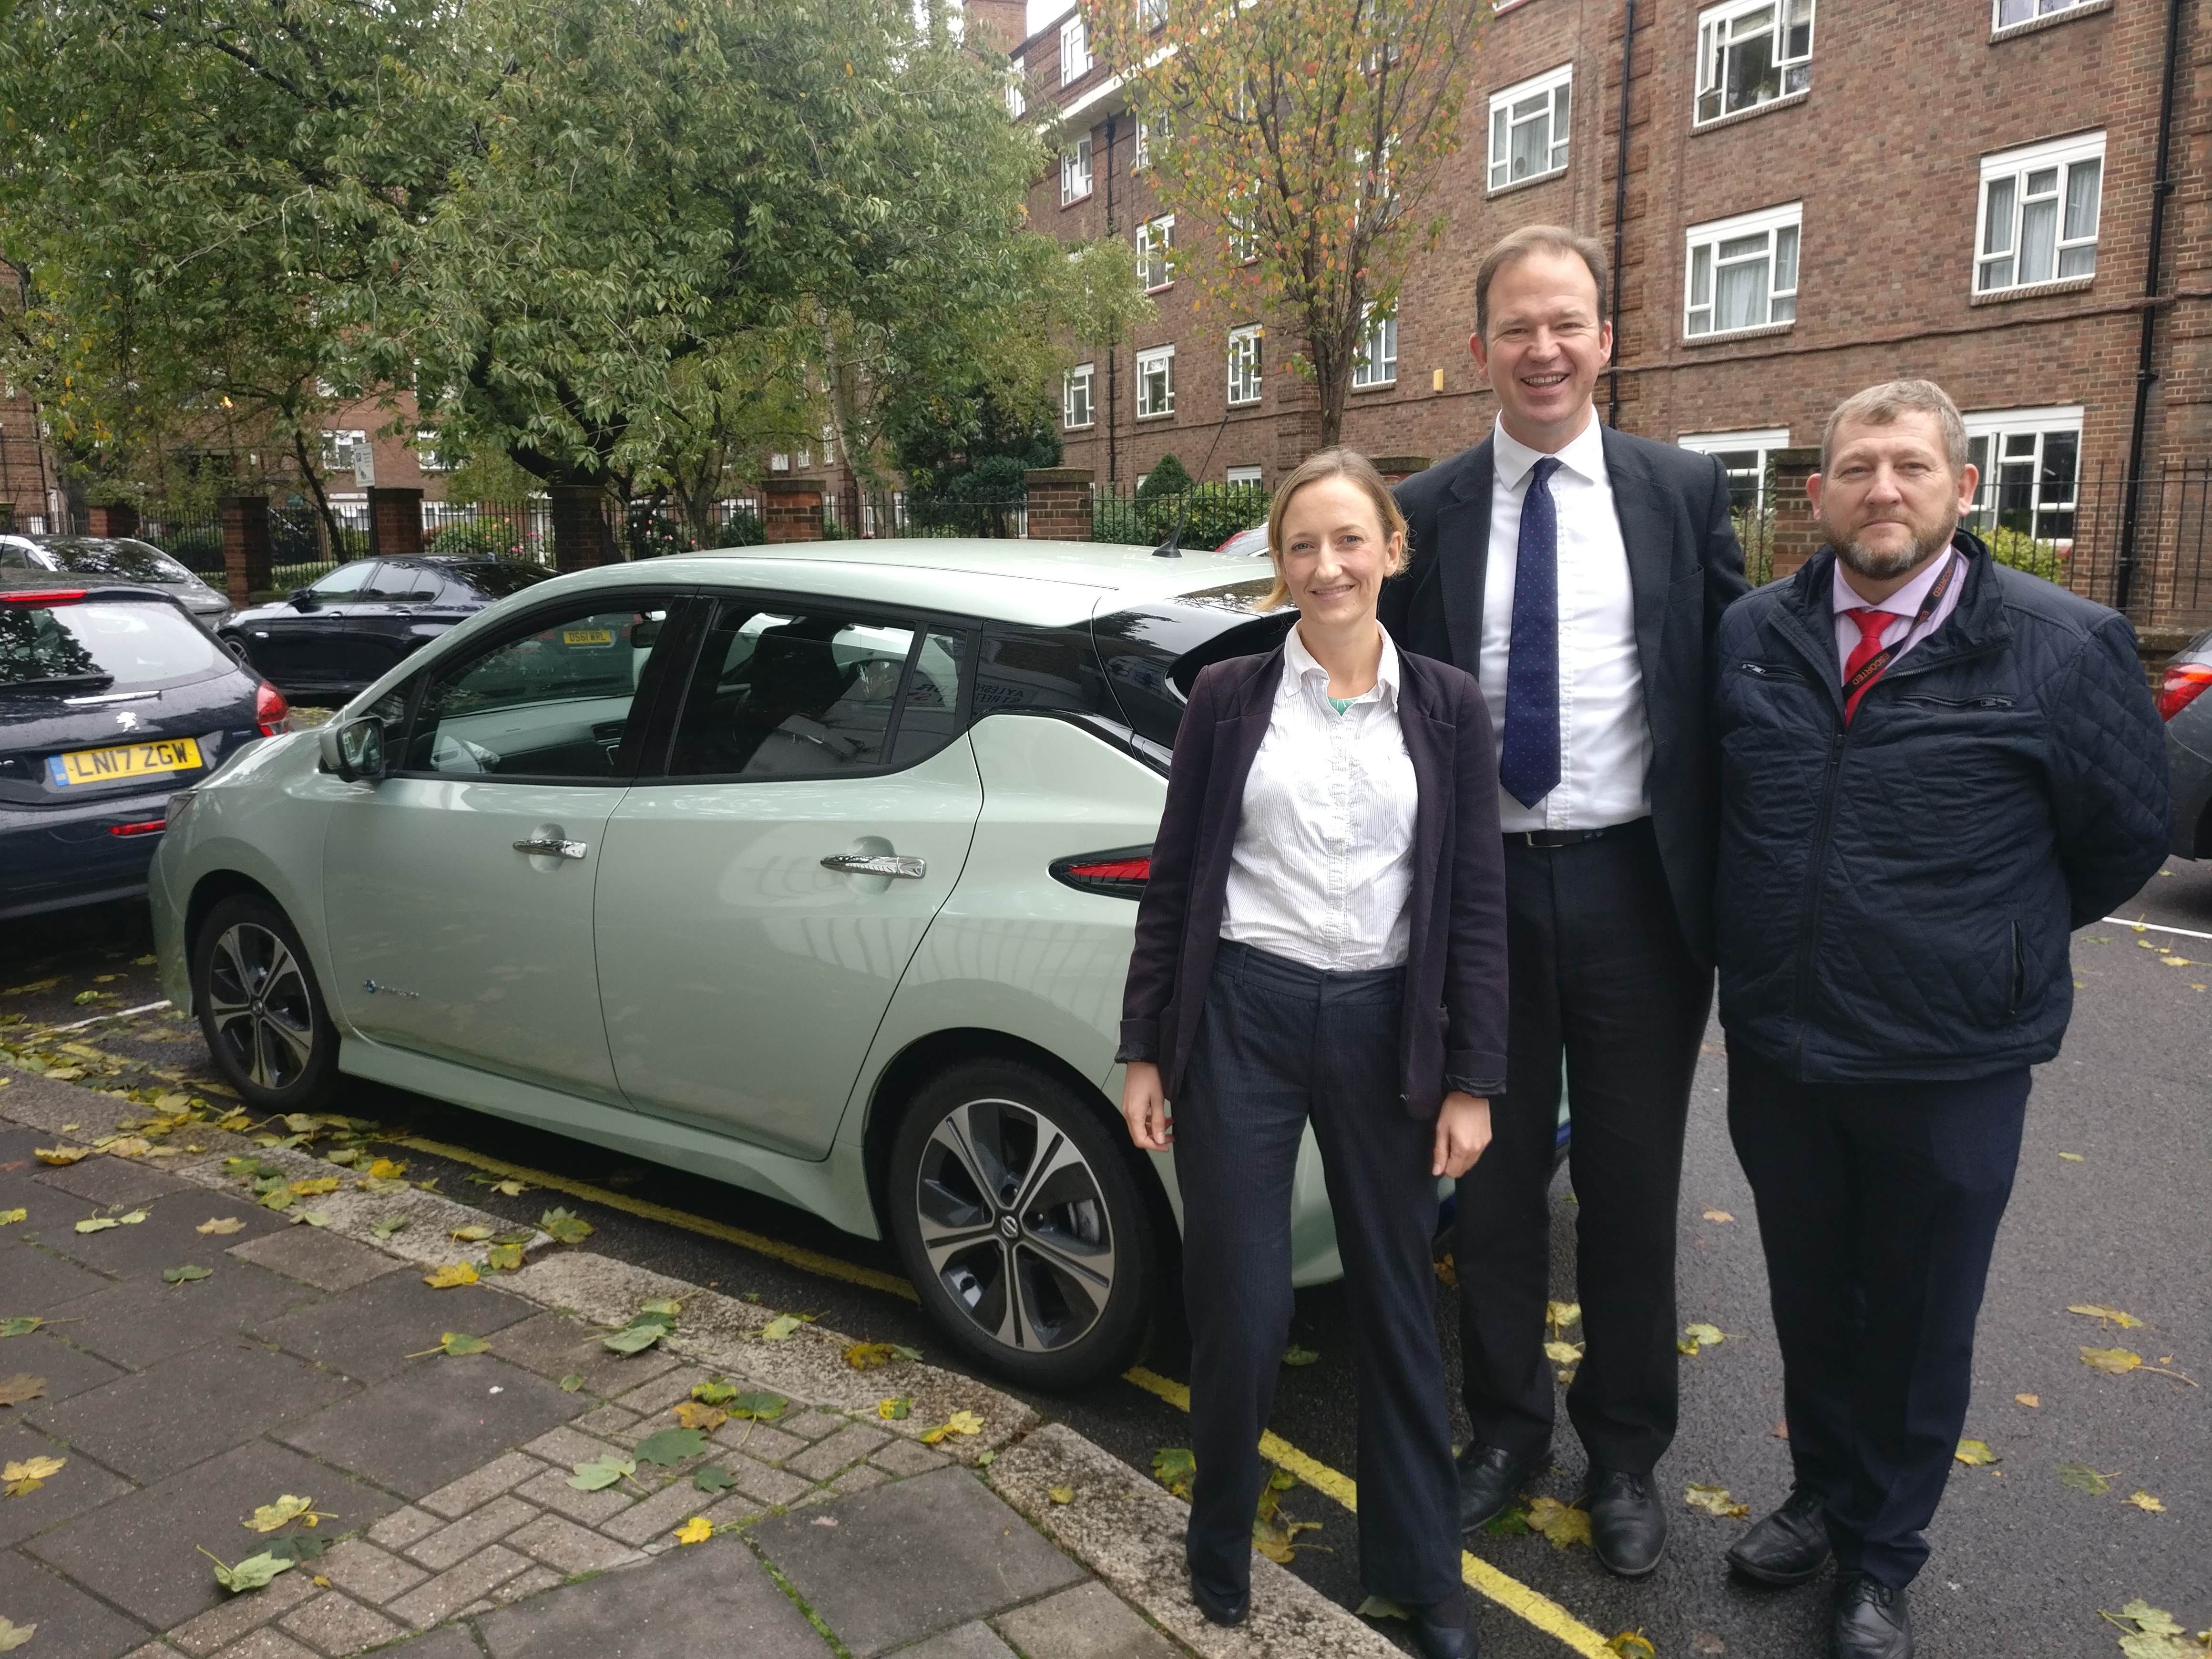 Jesse Norman MP, John Hughes (trainer) and Carry Keay from Energy Saving Trust